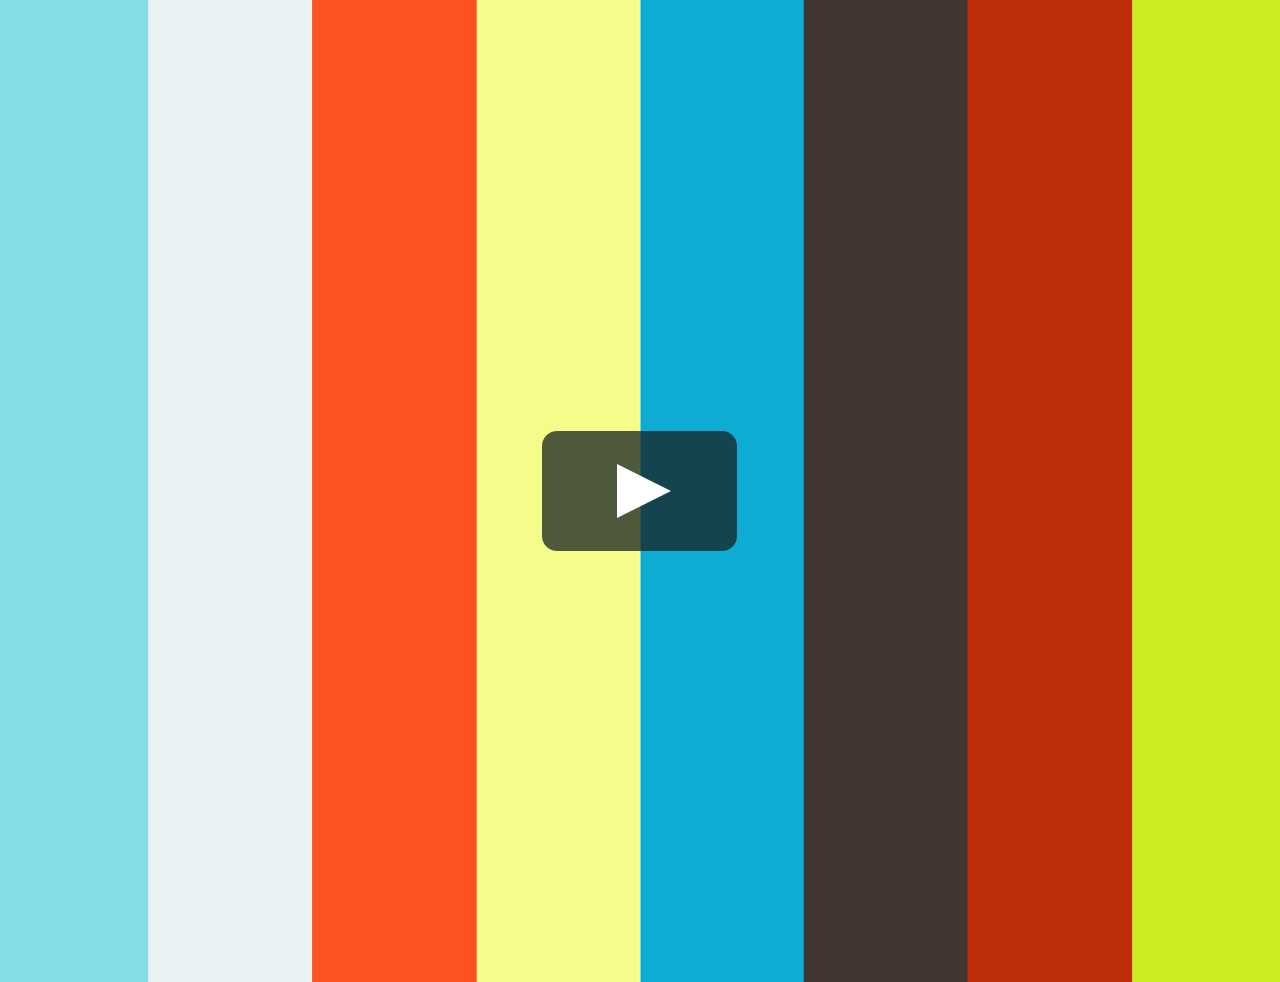 ISA Prep- Final Steps and Management of Test (slides 29-31)